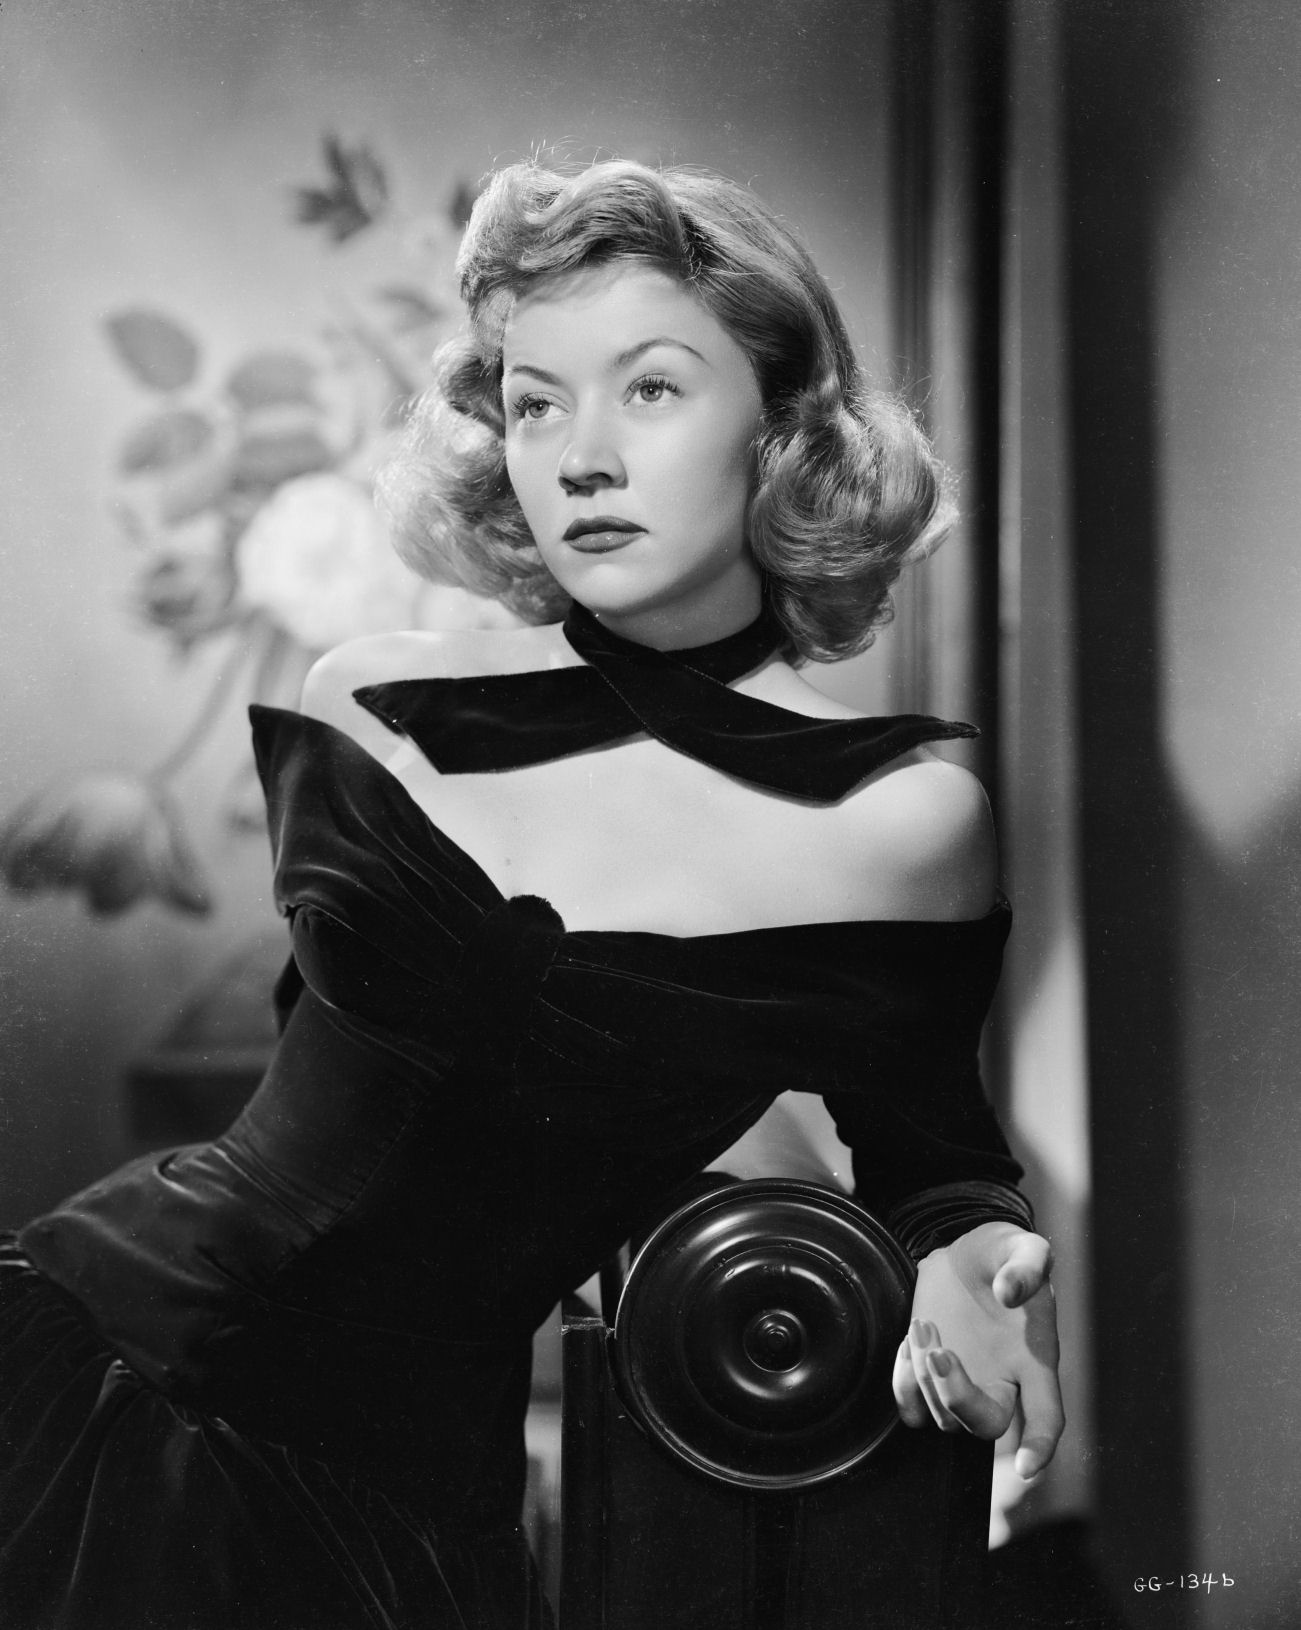 http://verdoux.files.wordpress.com/2008/02/gloria-grahame.jpg